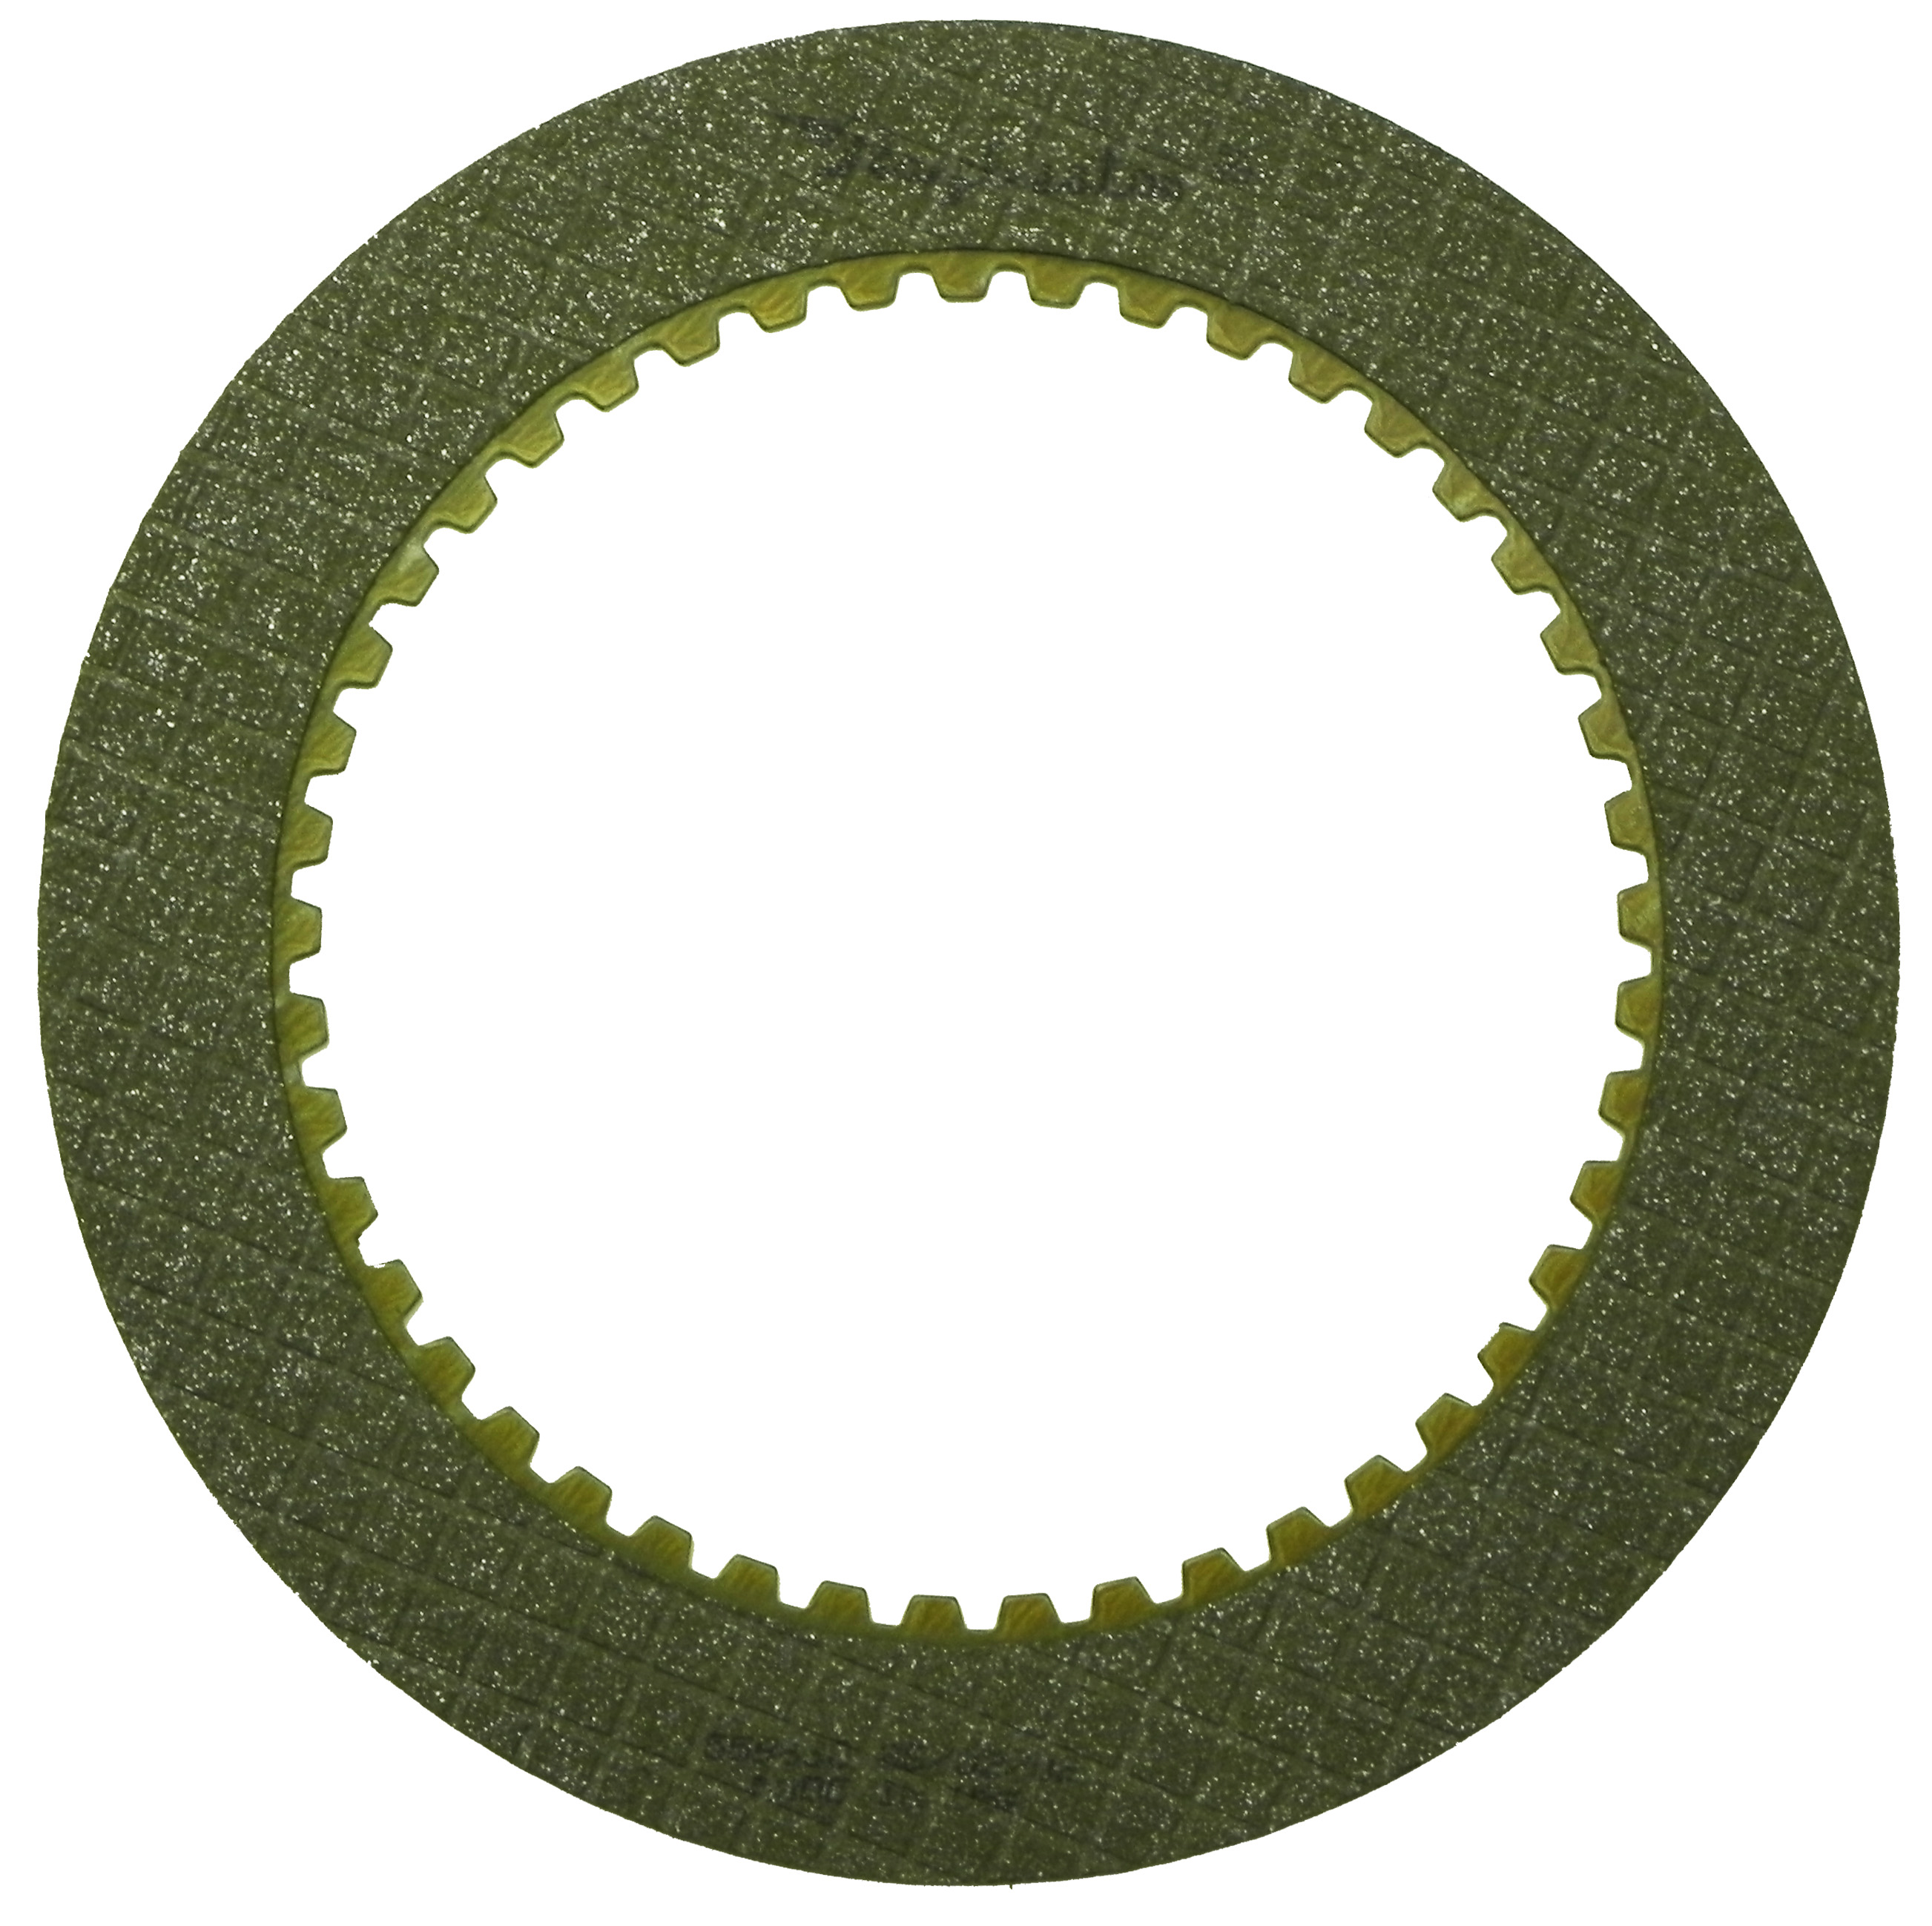 R559630 | 1968-1981 Friction Clutch Plate Graphitic Forward Graphitic